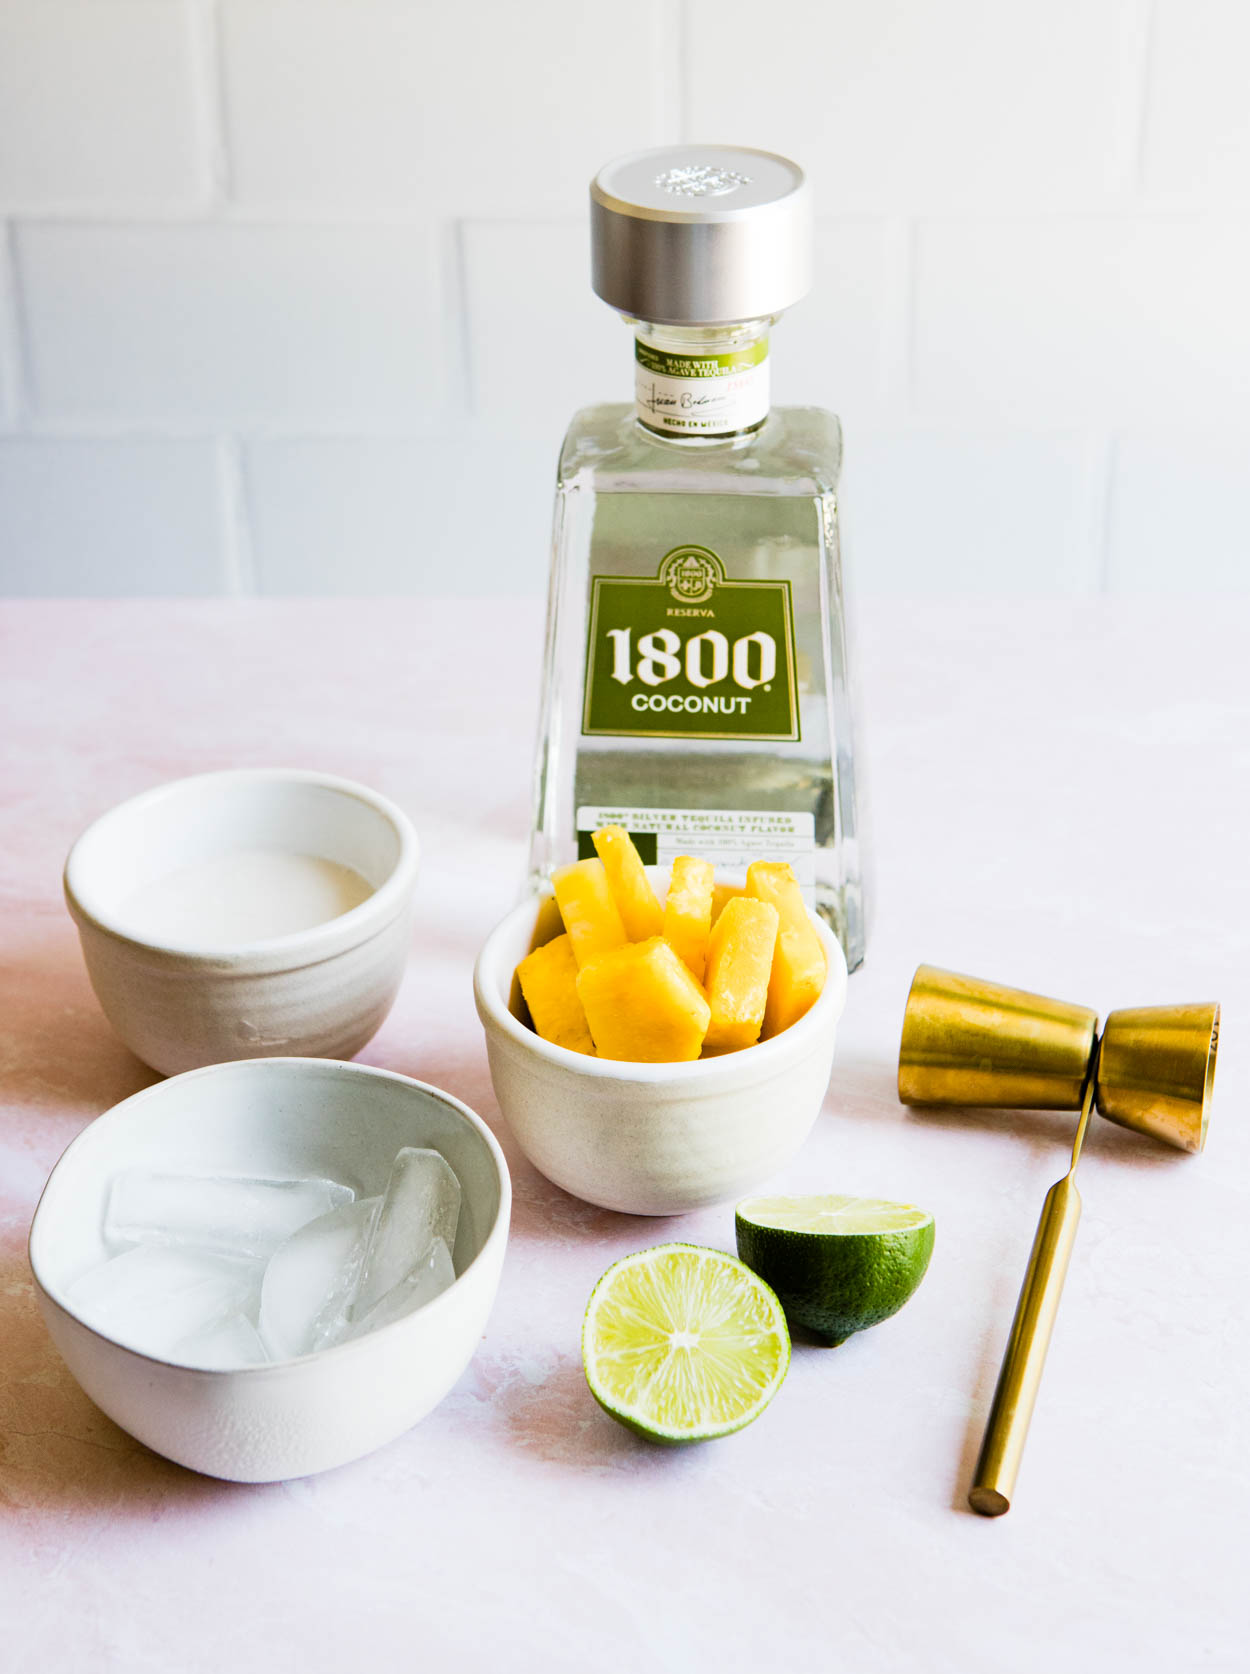 1800 coconut tequila with pineapple and ice and coconut milk in white bowls